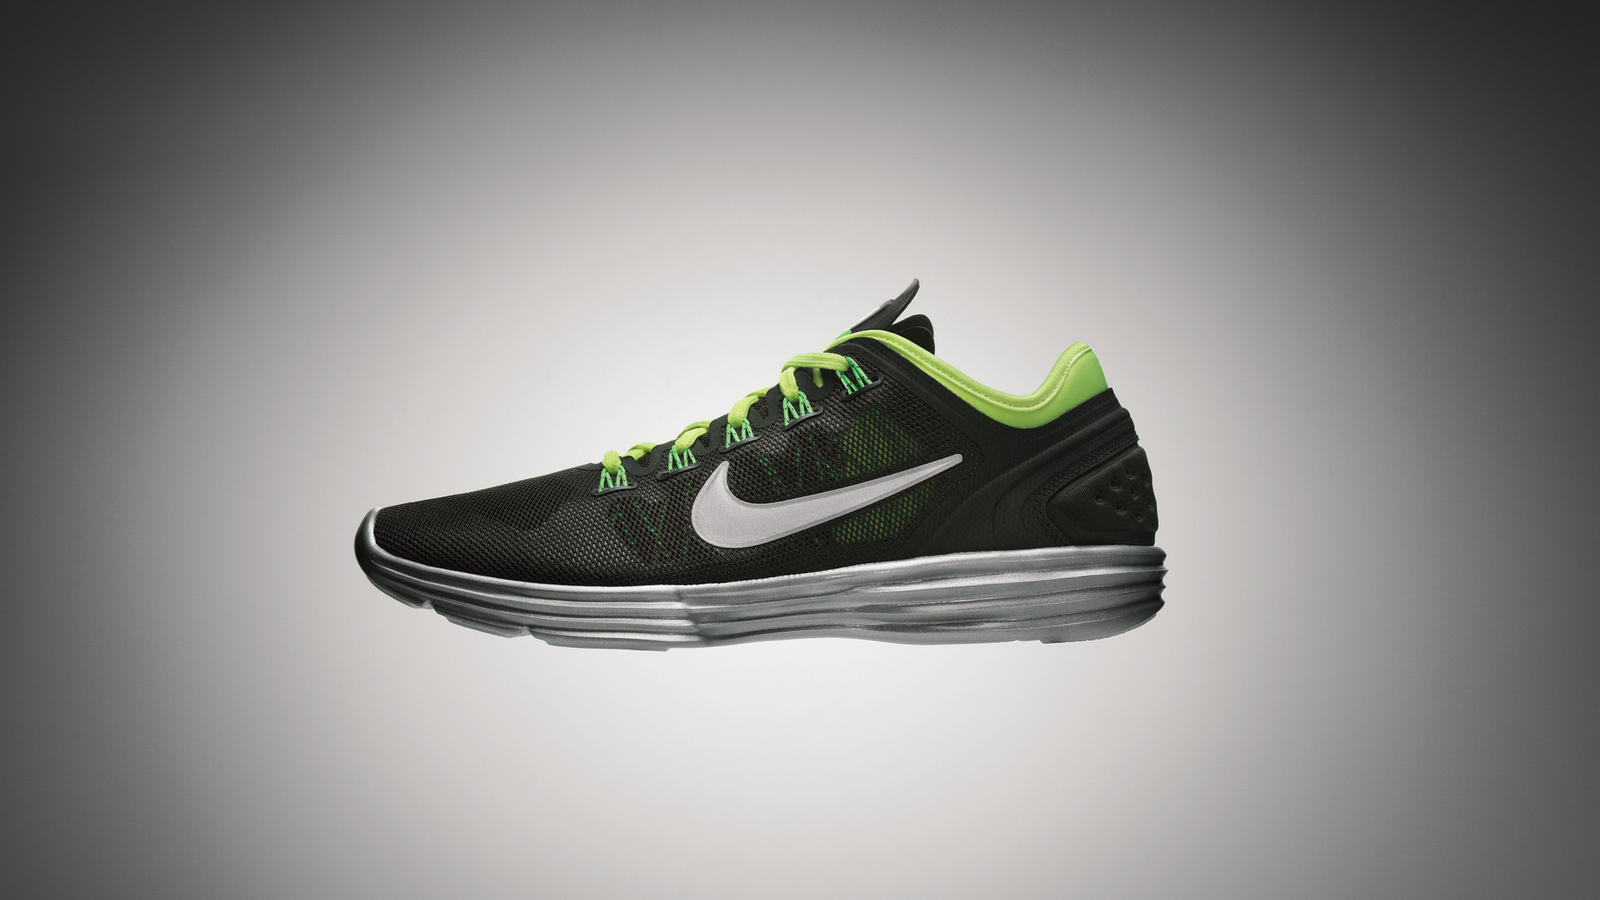 NikeLunar_Innovation_Su12_LunarHyperworkout_O-01